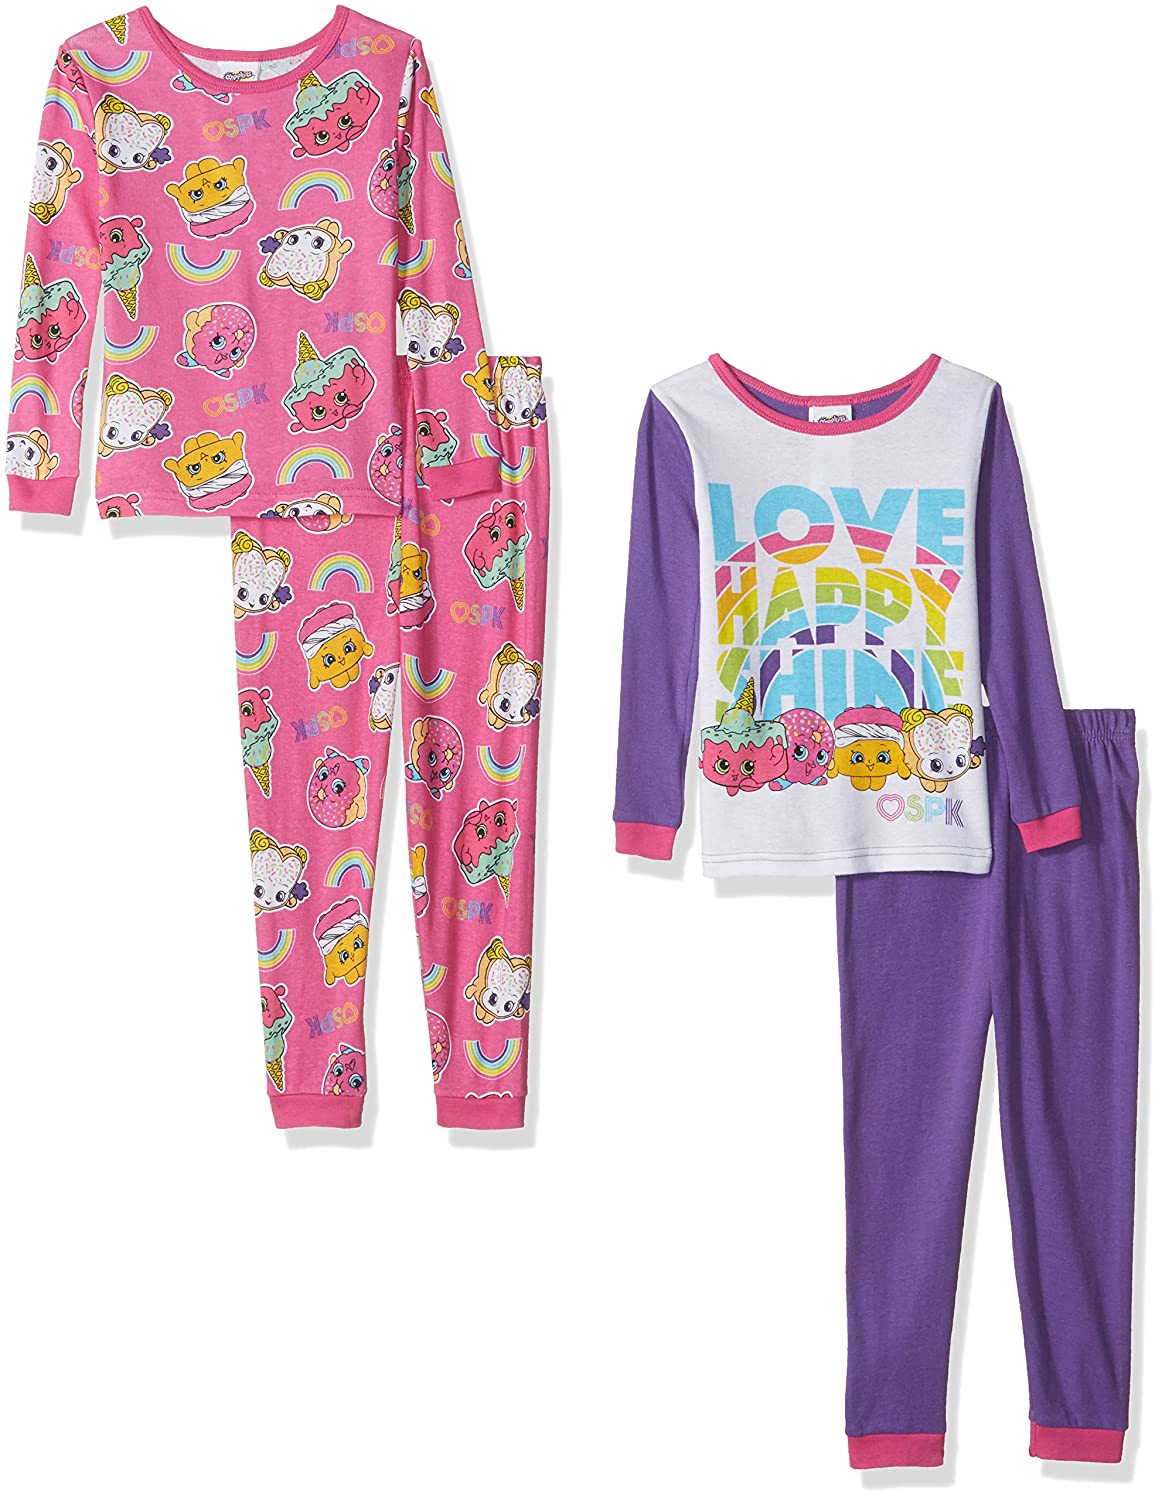 426af189ea5  Questions about Shopkins Sets  Shopkins Girls  Collection 4-Piece Cotton  Pajama Set Question  Can you guys help im trying to find a size small for  my 11 ...